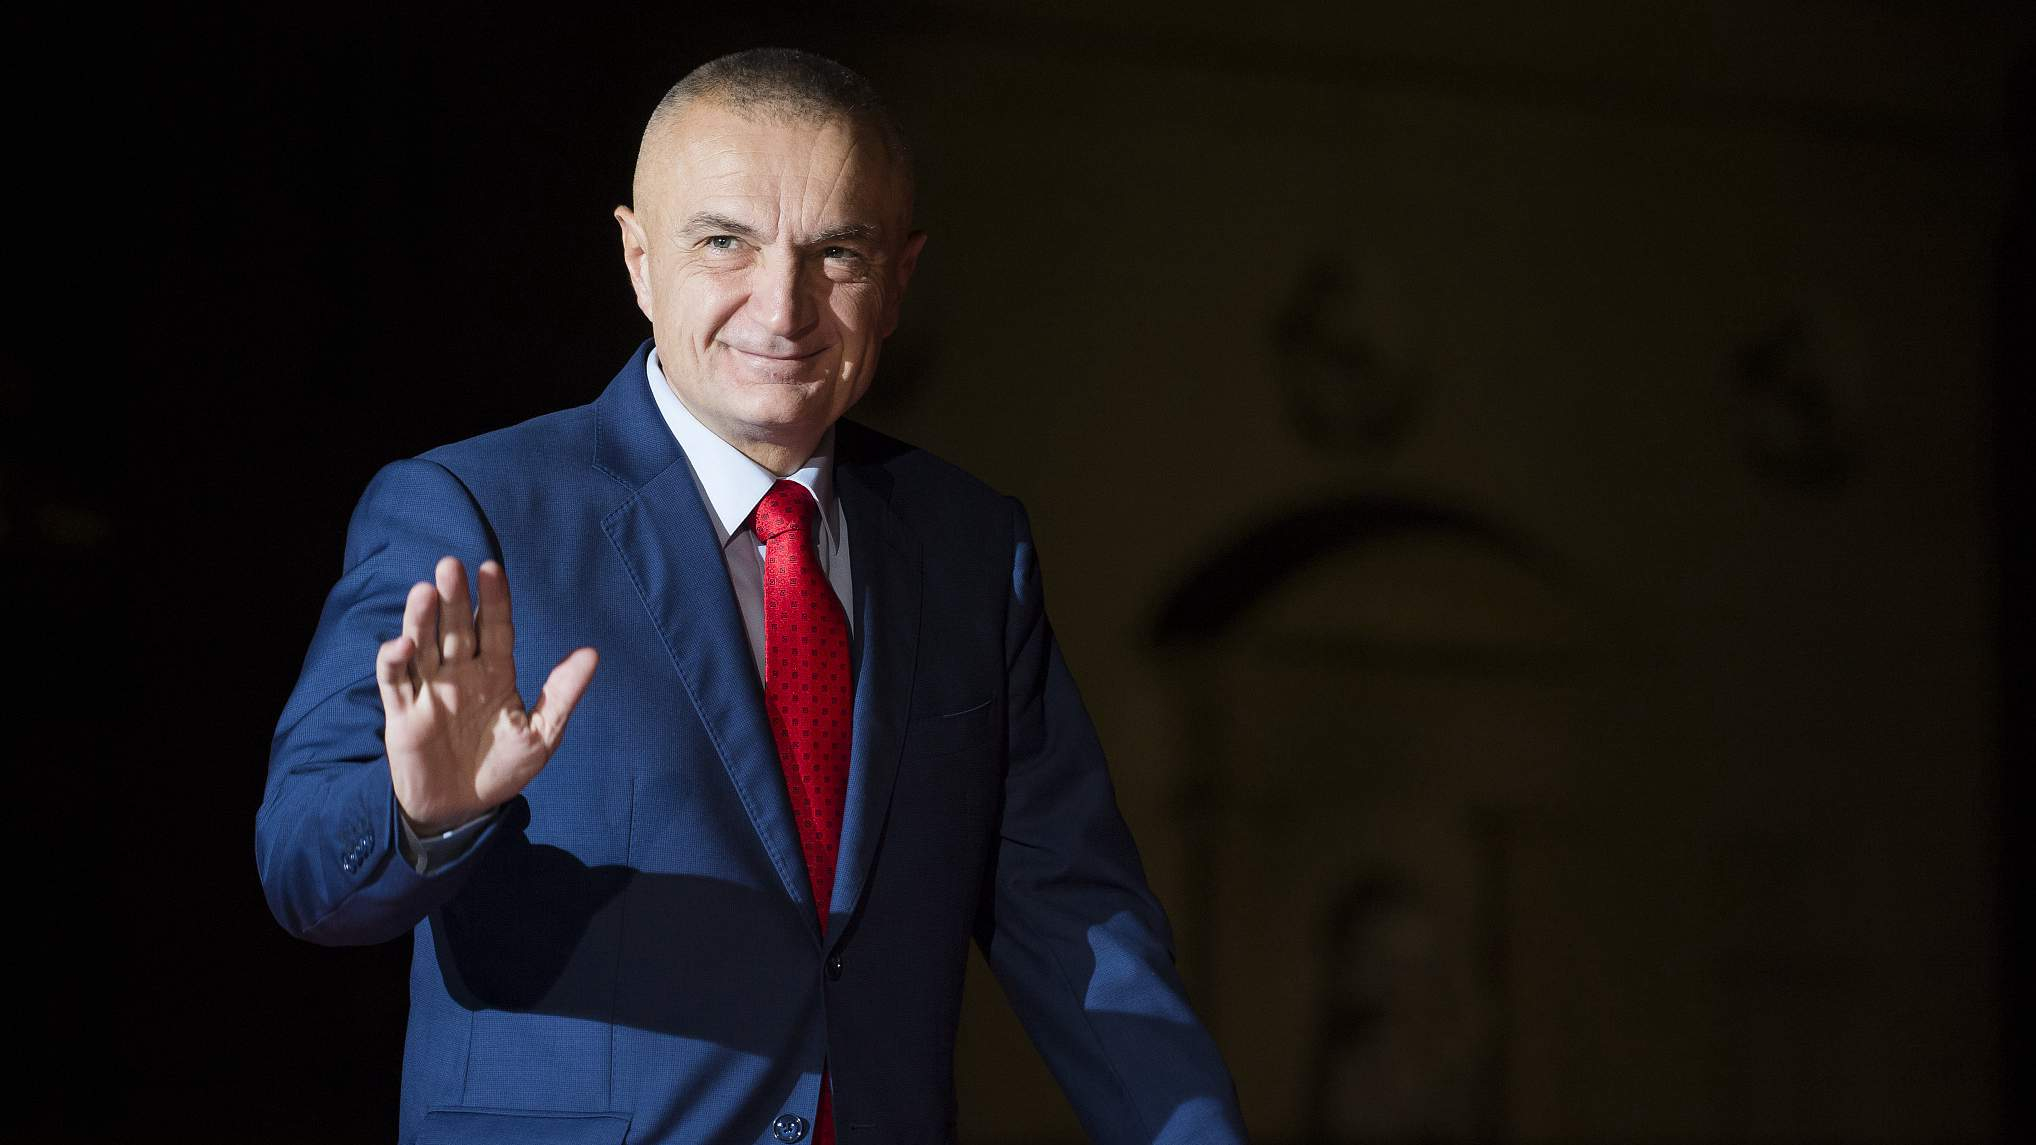 Albanian president meets small party leaders in attempt to solve political crisis